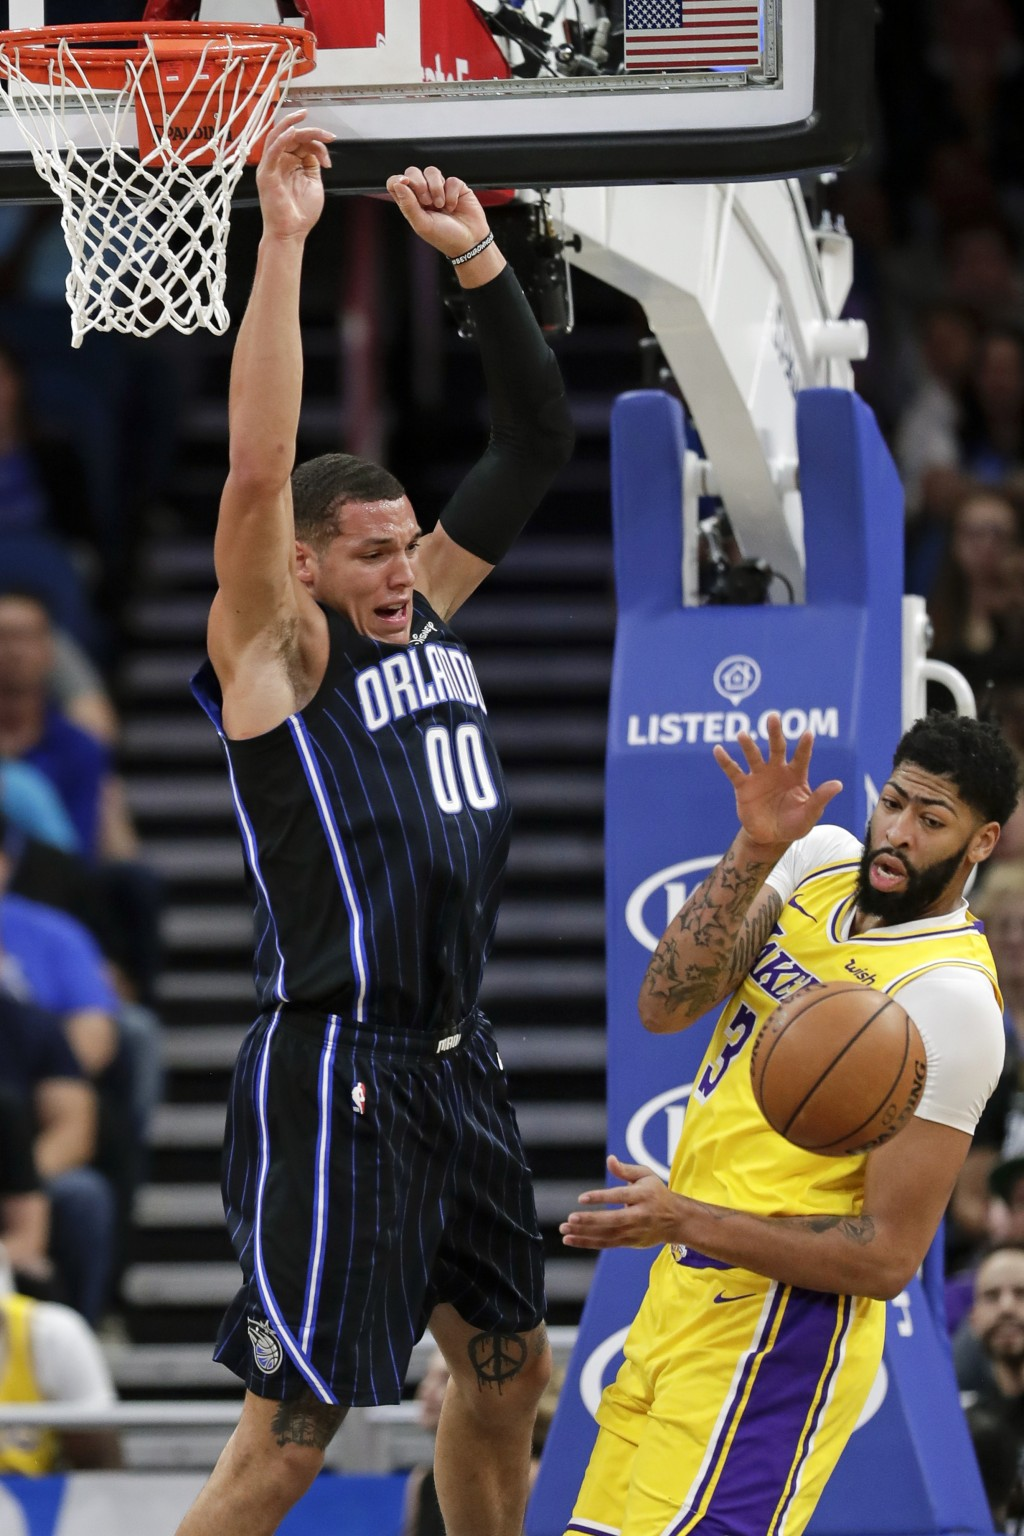 Orlando Magic's Aaron Gordon (00) loses the ball as he goes up for a shot against Los Angeles Lakers' Anthony Davis, right, during the first half of a...